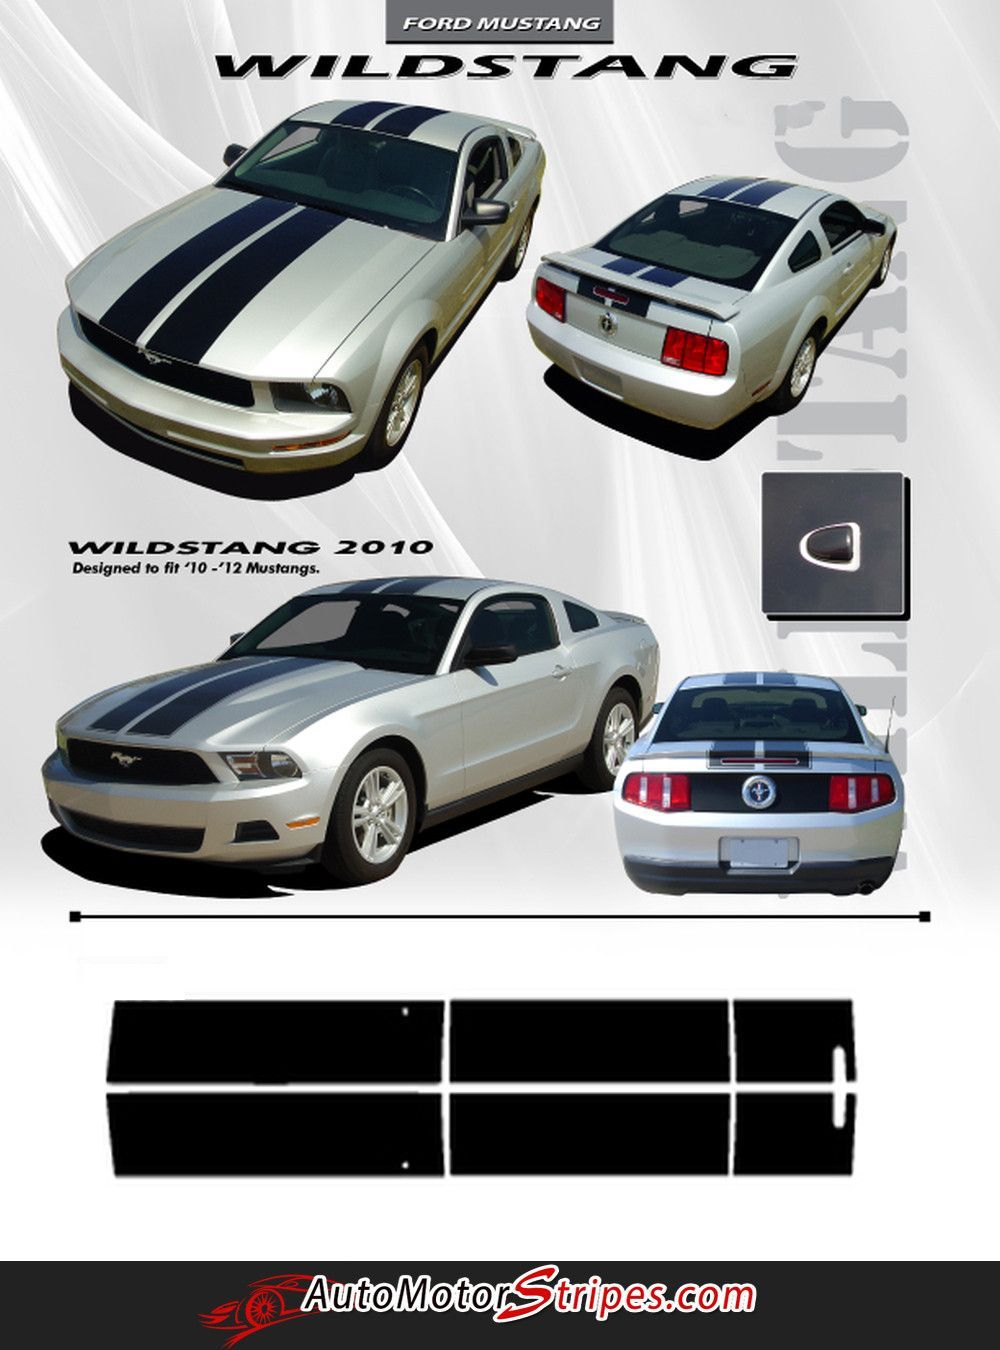 2010 2012 Ford Mustang Wildstang Racing And Rally Stripes 3m Vinyl Decal Graphics 2009 Ford Mustang 2012 Ford Mustang Ford Mustang